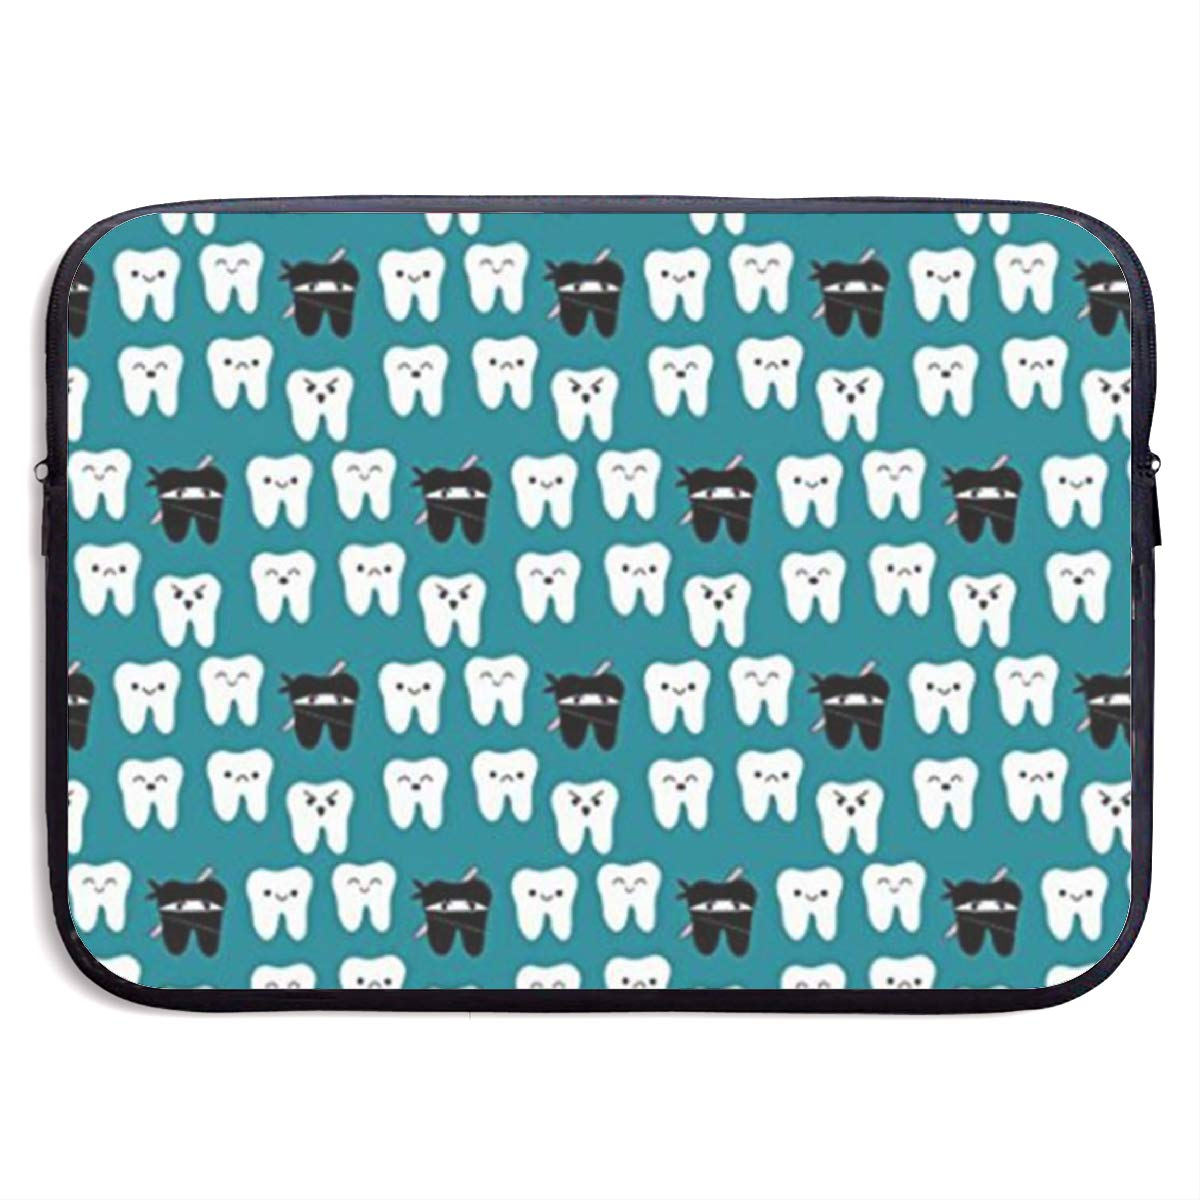 Amazon.com: Tooth Fabric Way of The Ninja Tooth 13-15 Inch ...